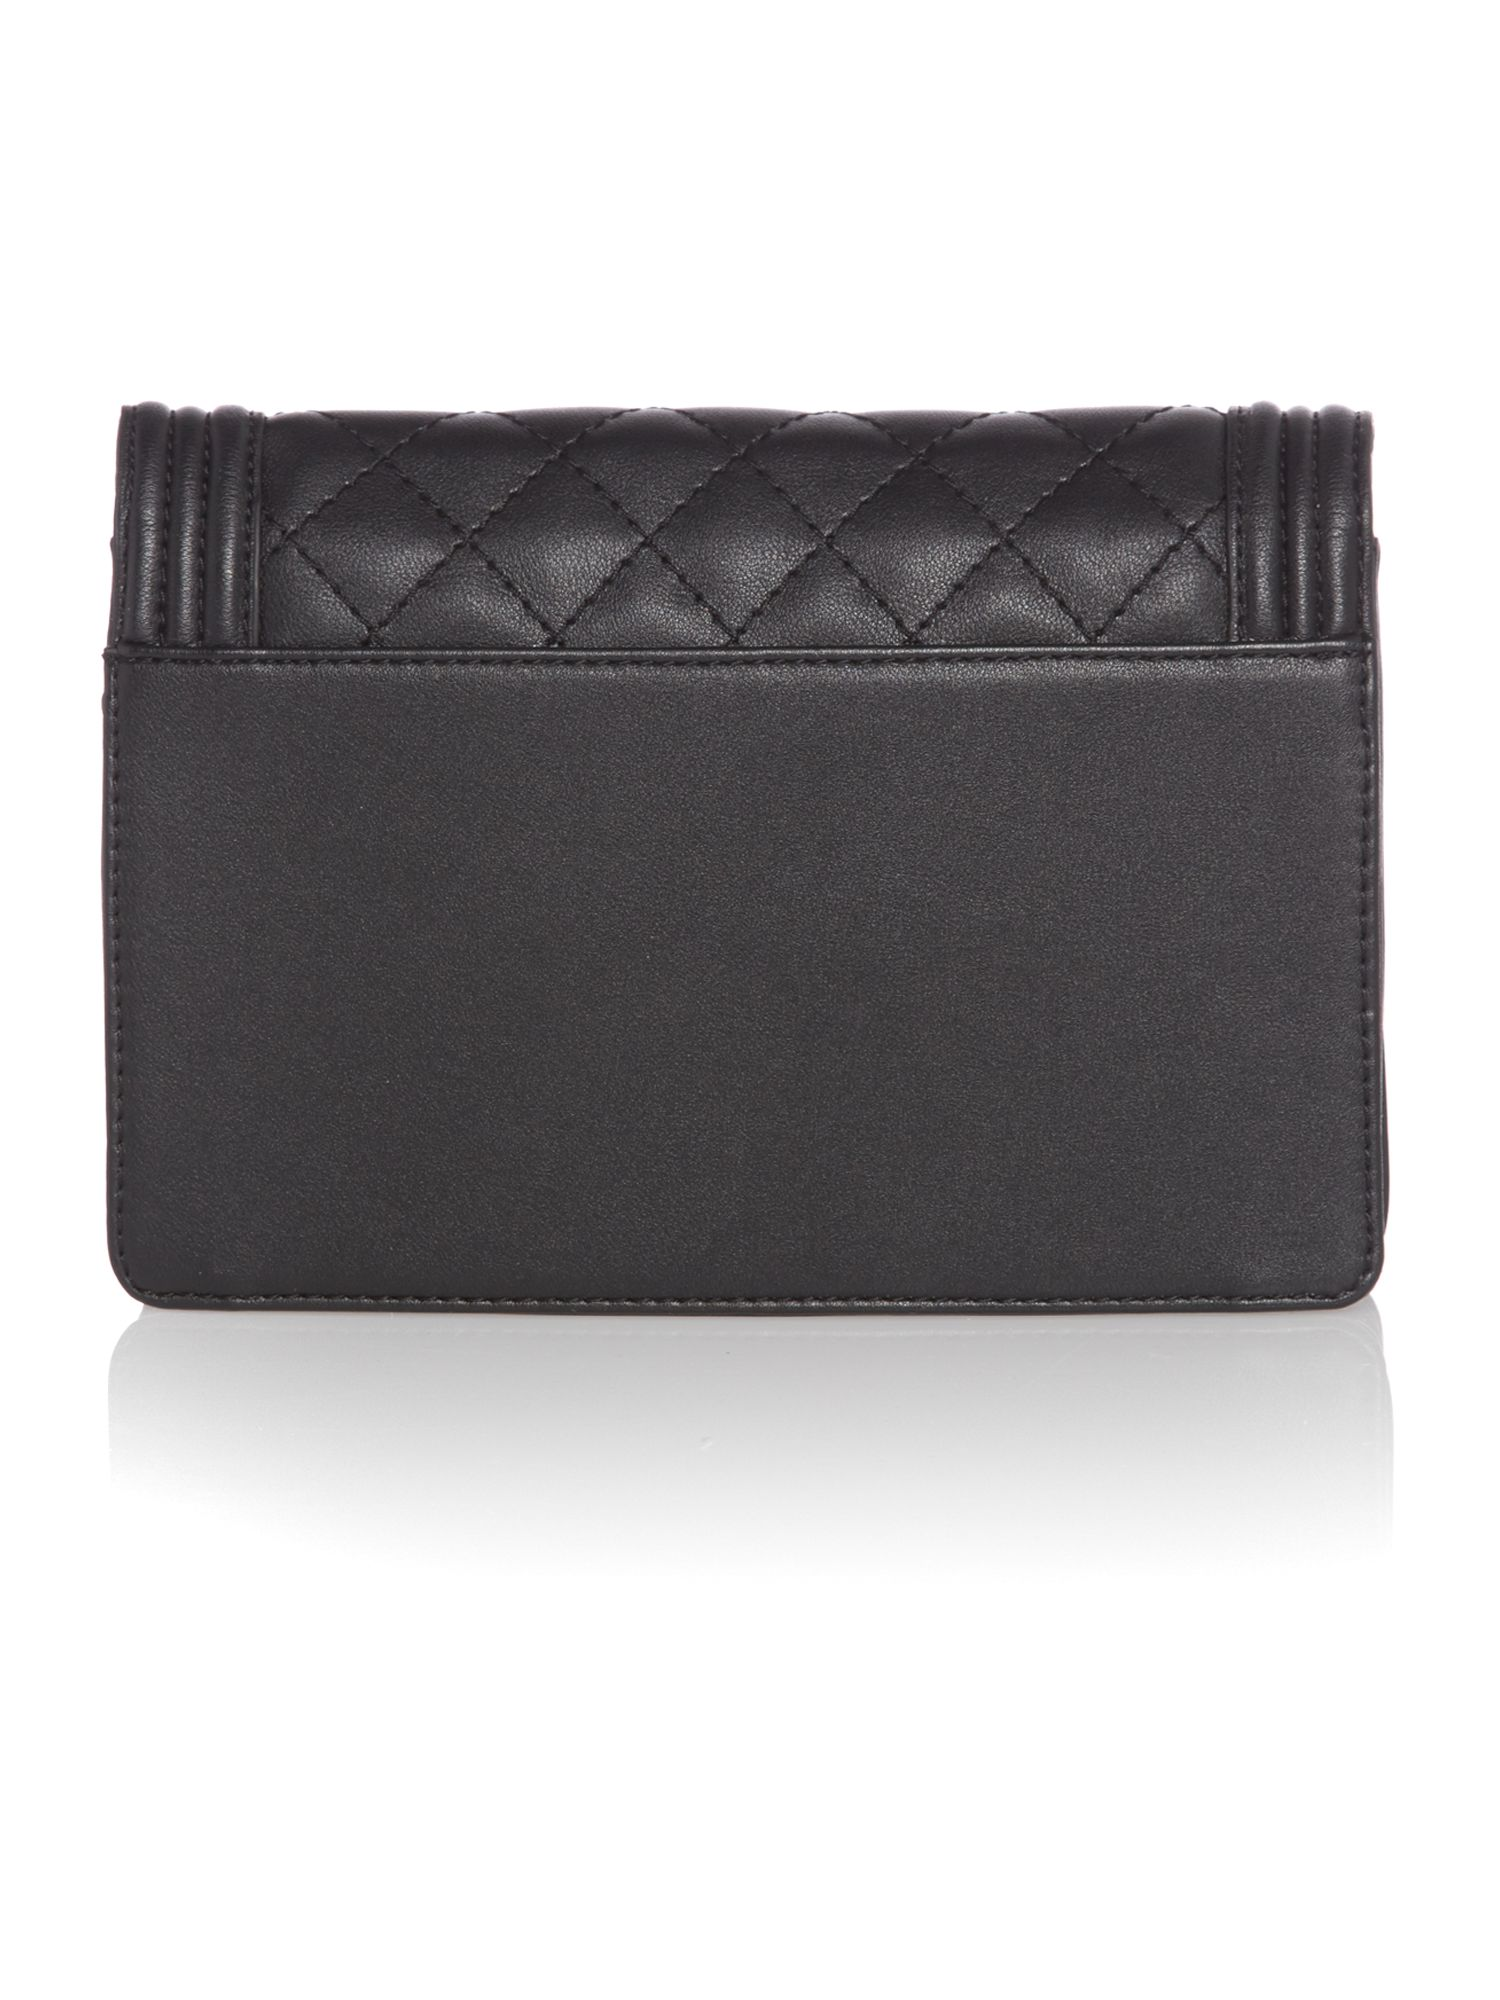 Chelsea black shoulder bag